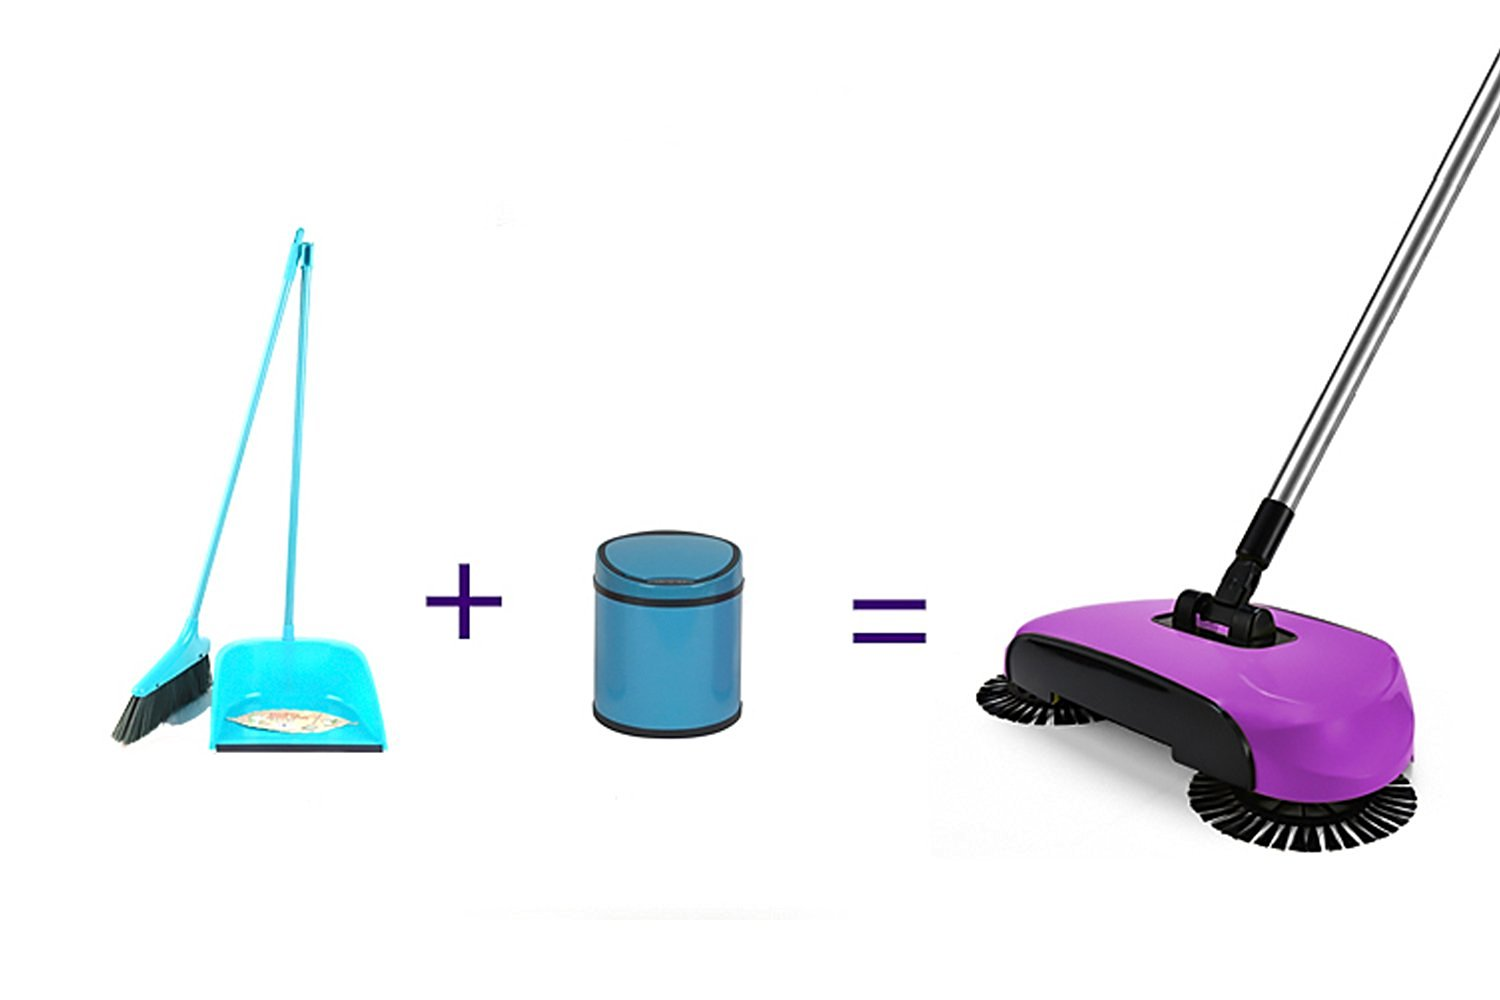 LOHOME® 360 Degree Rotating Broom, Hand-Push No Electric Safe Cleaners Broom Dustpan Trash 3-in-1 Cordless Swivel Sweeper